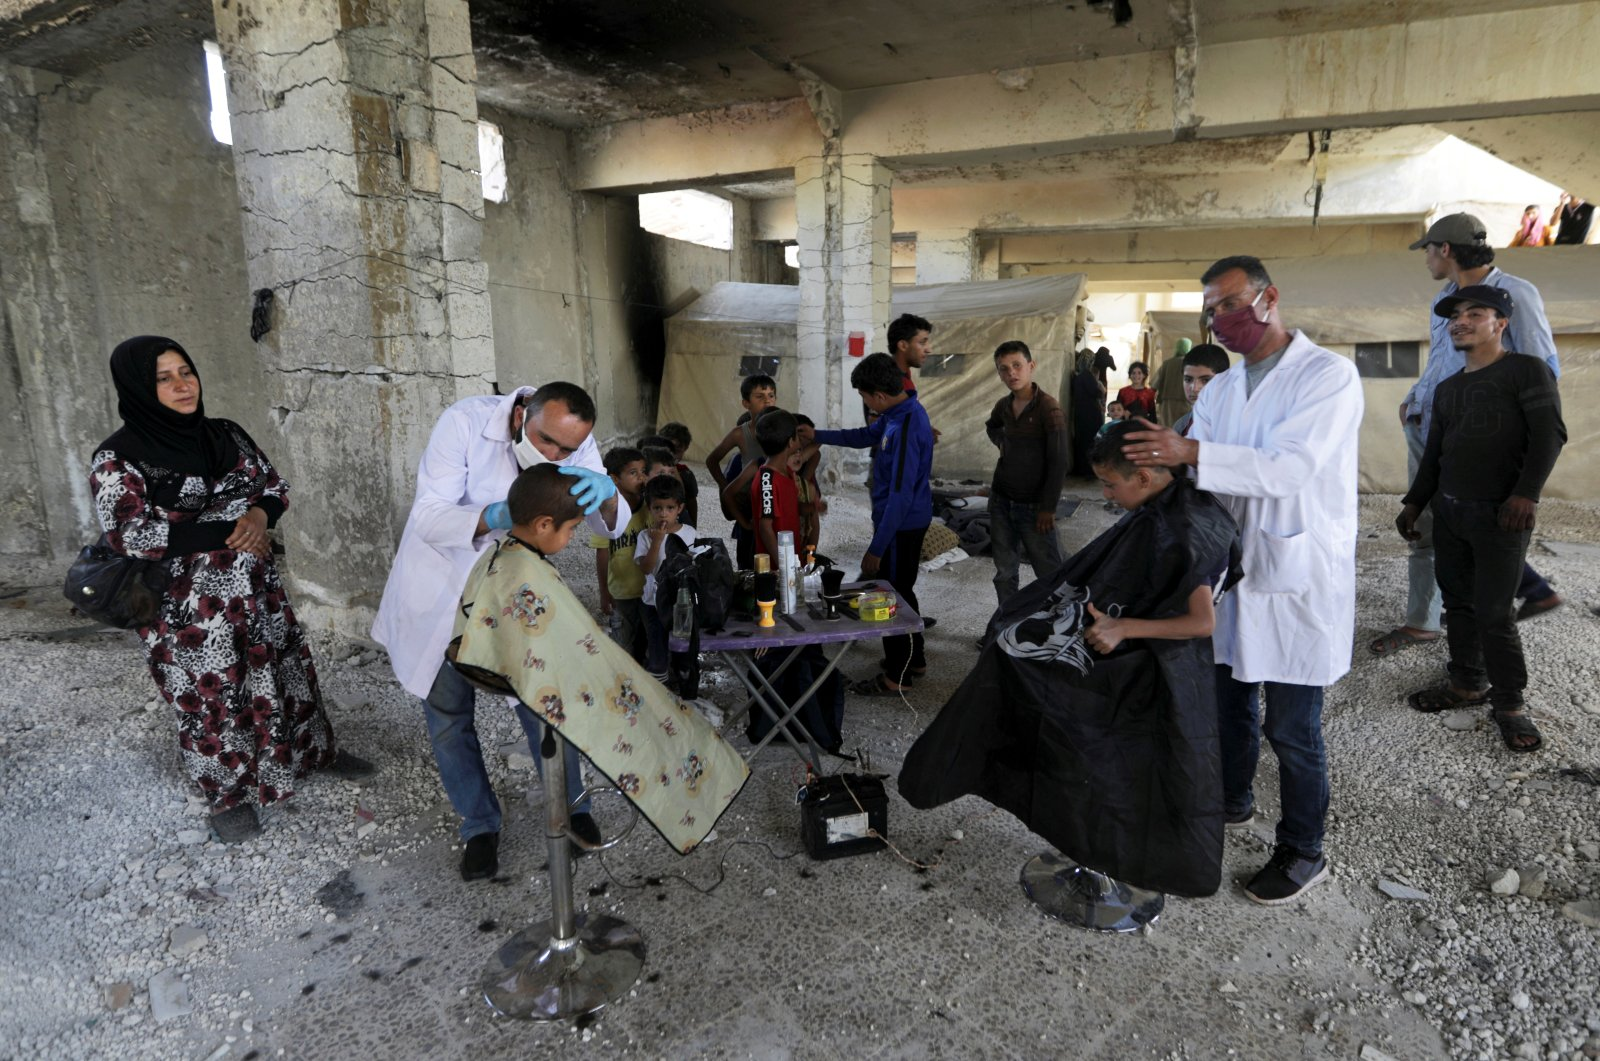 Volunteer hairdressers from the International Association for Relief and Development (ONSUR) wearing face masks and gloves cut the hair of internally displaced children at a camp for the displaced in Idlib, Syria, May 19, 2020. (Reuters Photo)